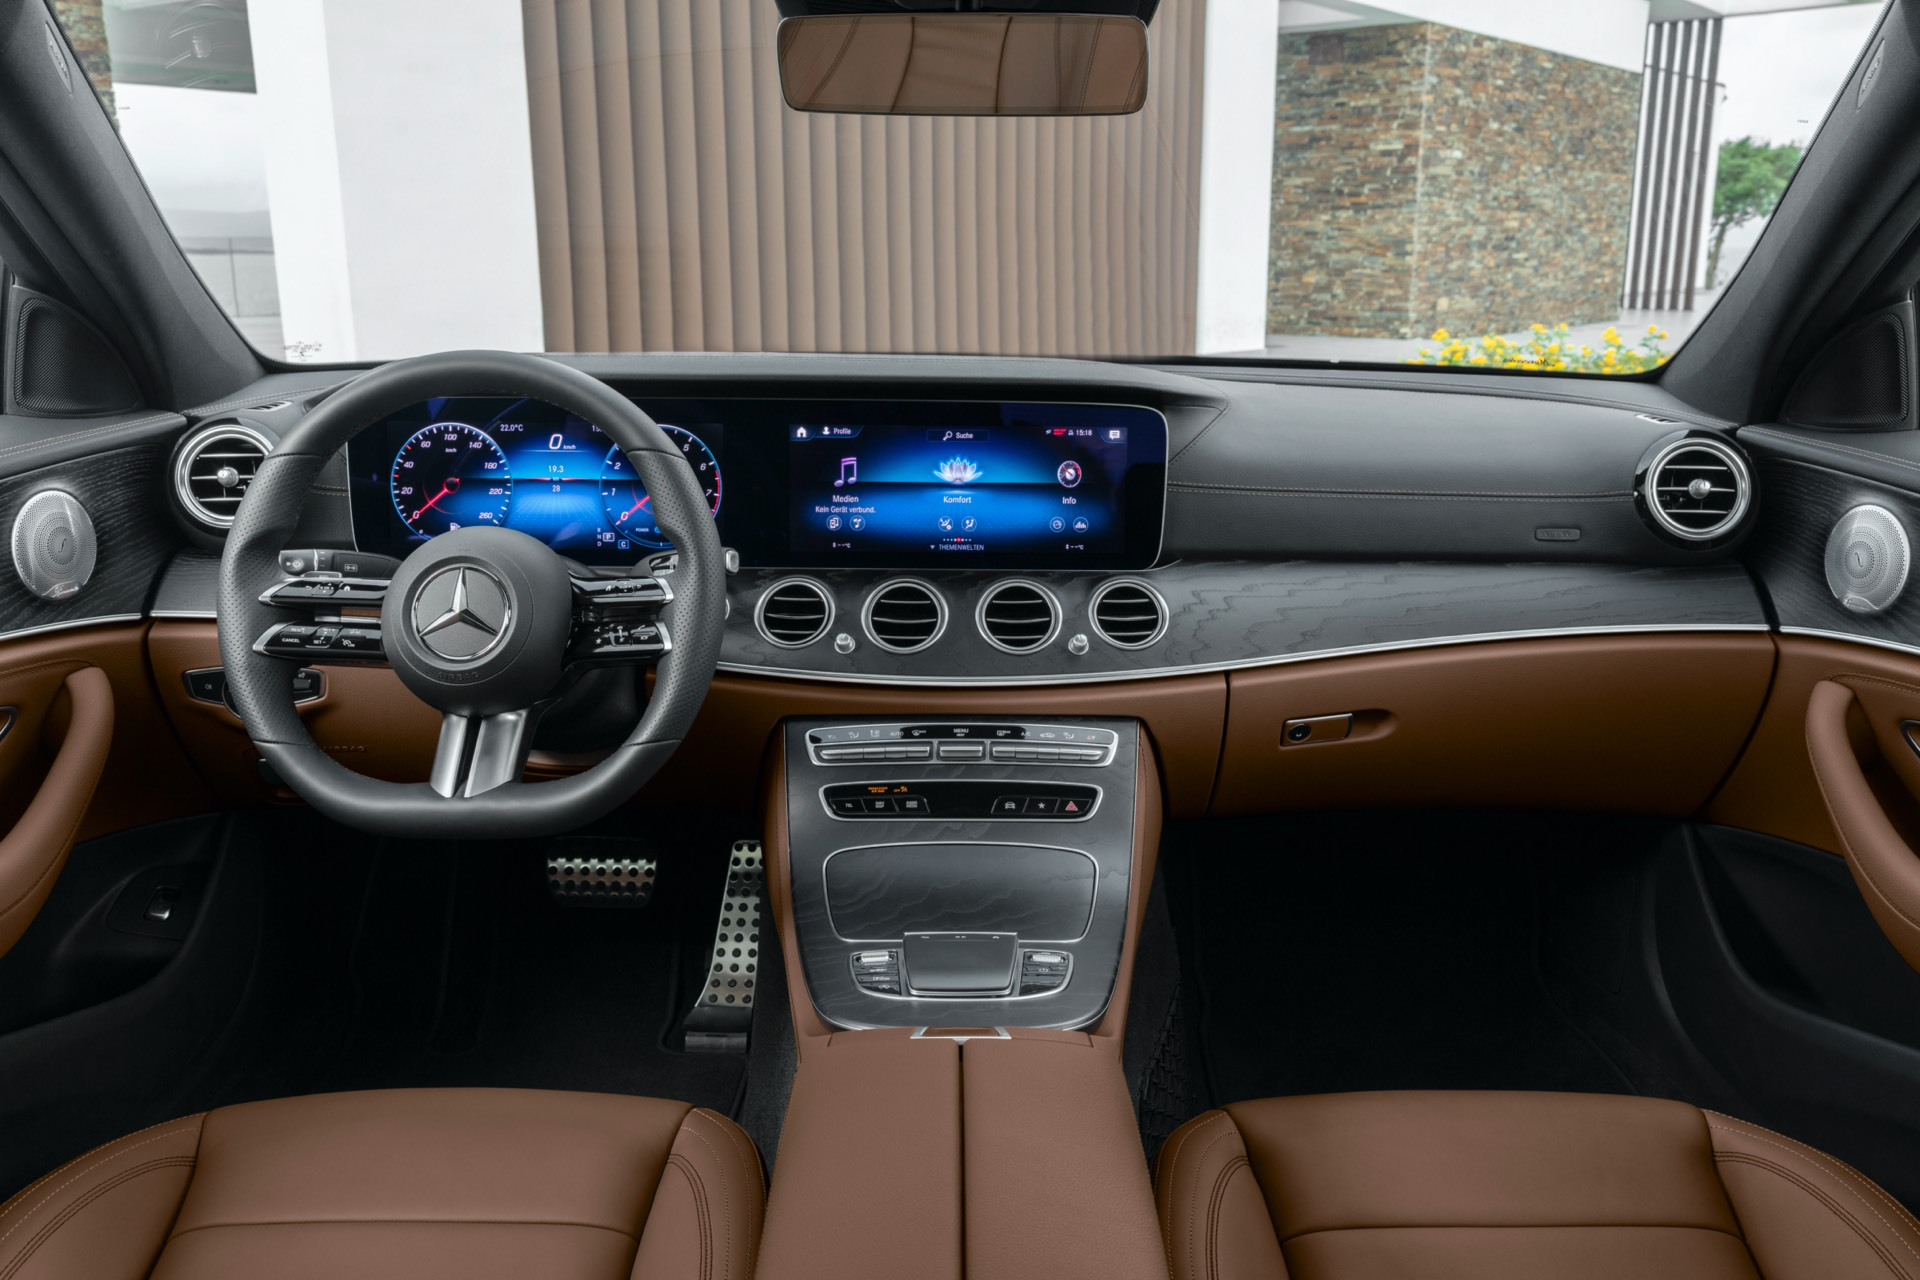 Mercedes-Benz E Class Facelift Interior